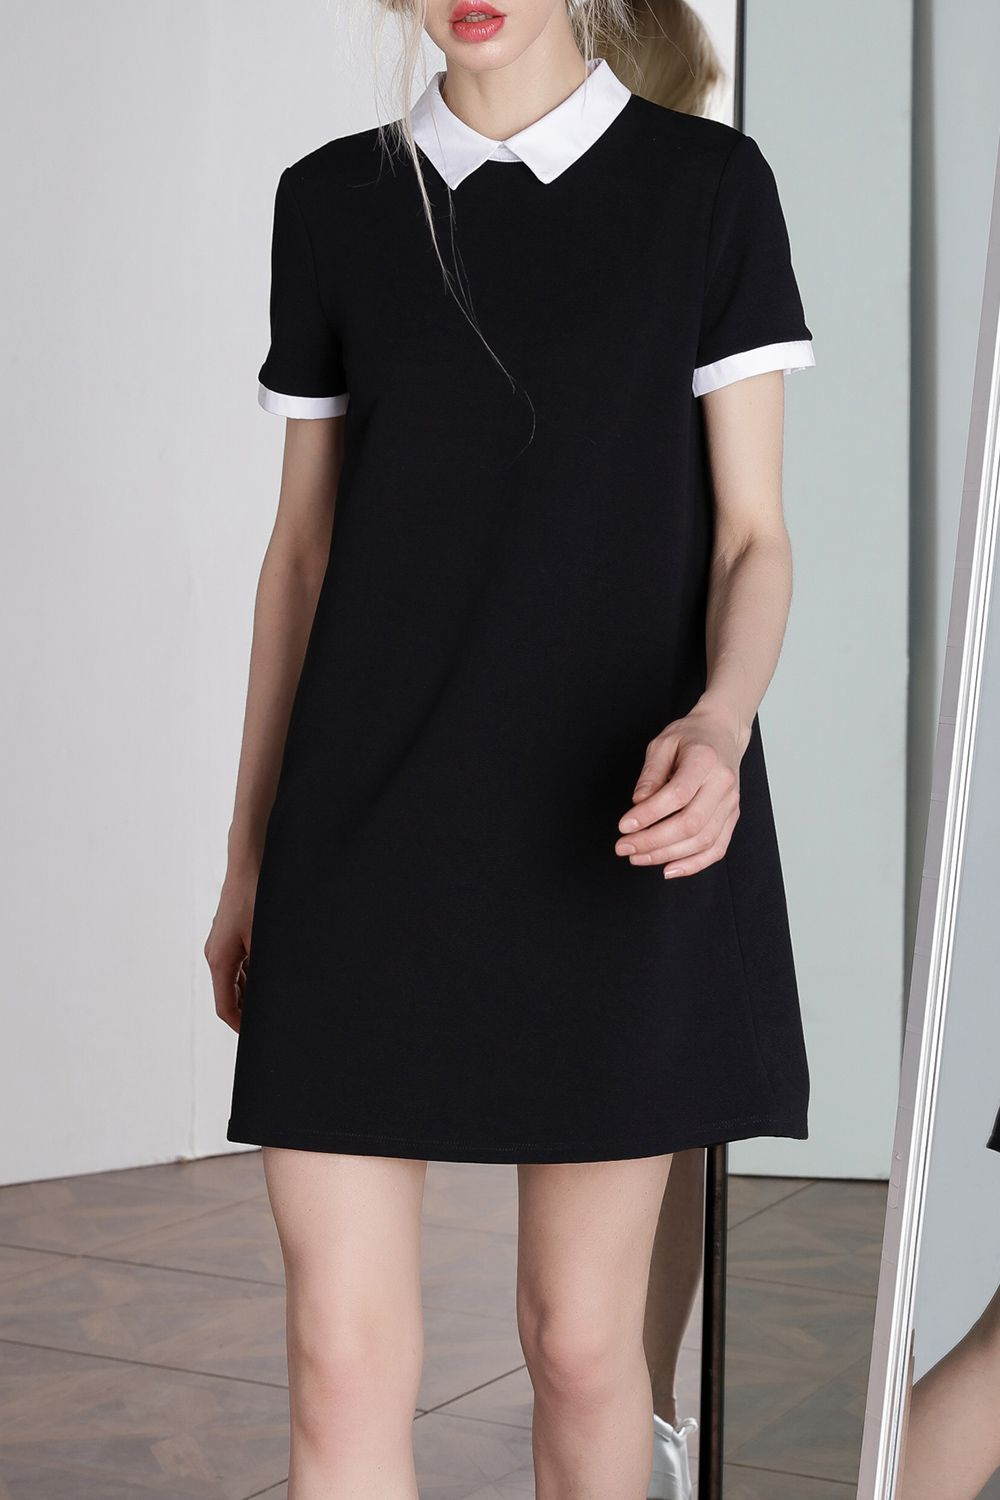 How To Wear Black Collared Dress